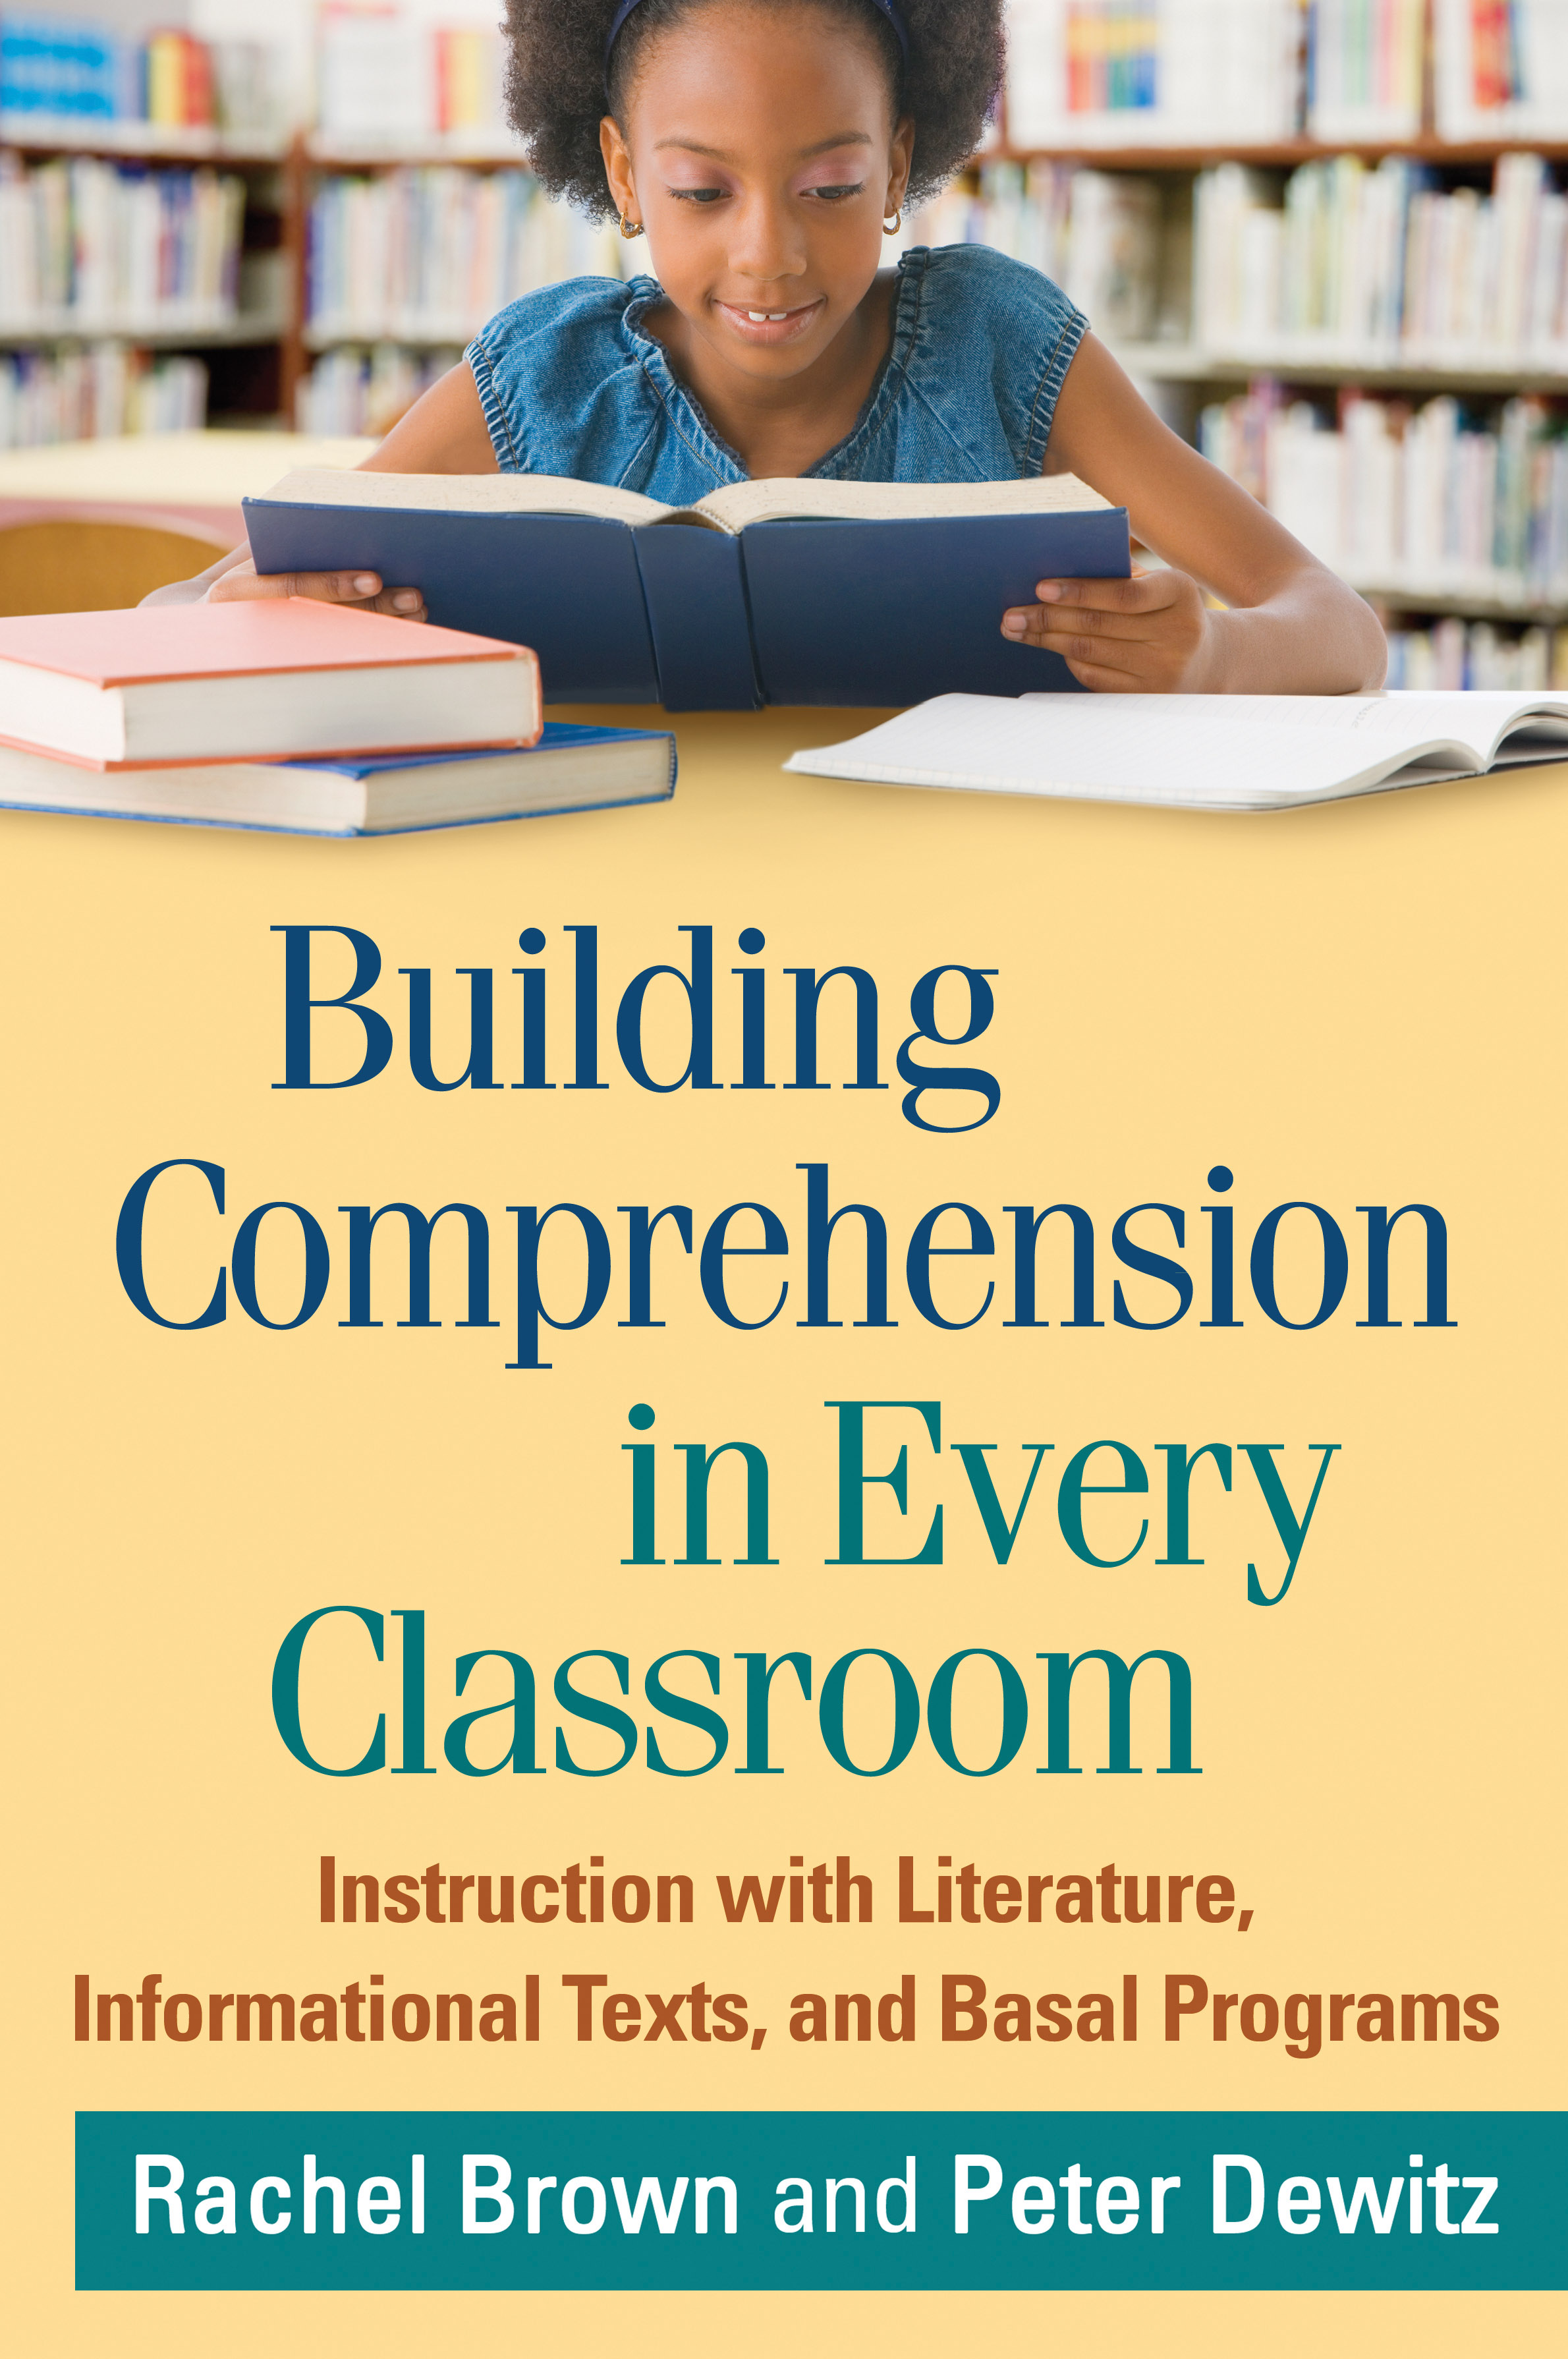 Worksheet Comprehension Programs building comprehension in every classroom instruction with literature informational texts and basal programs